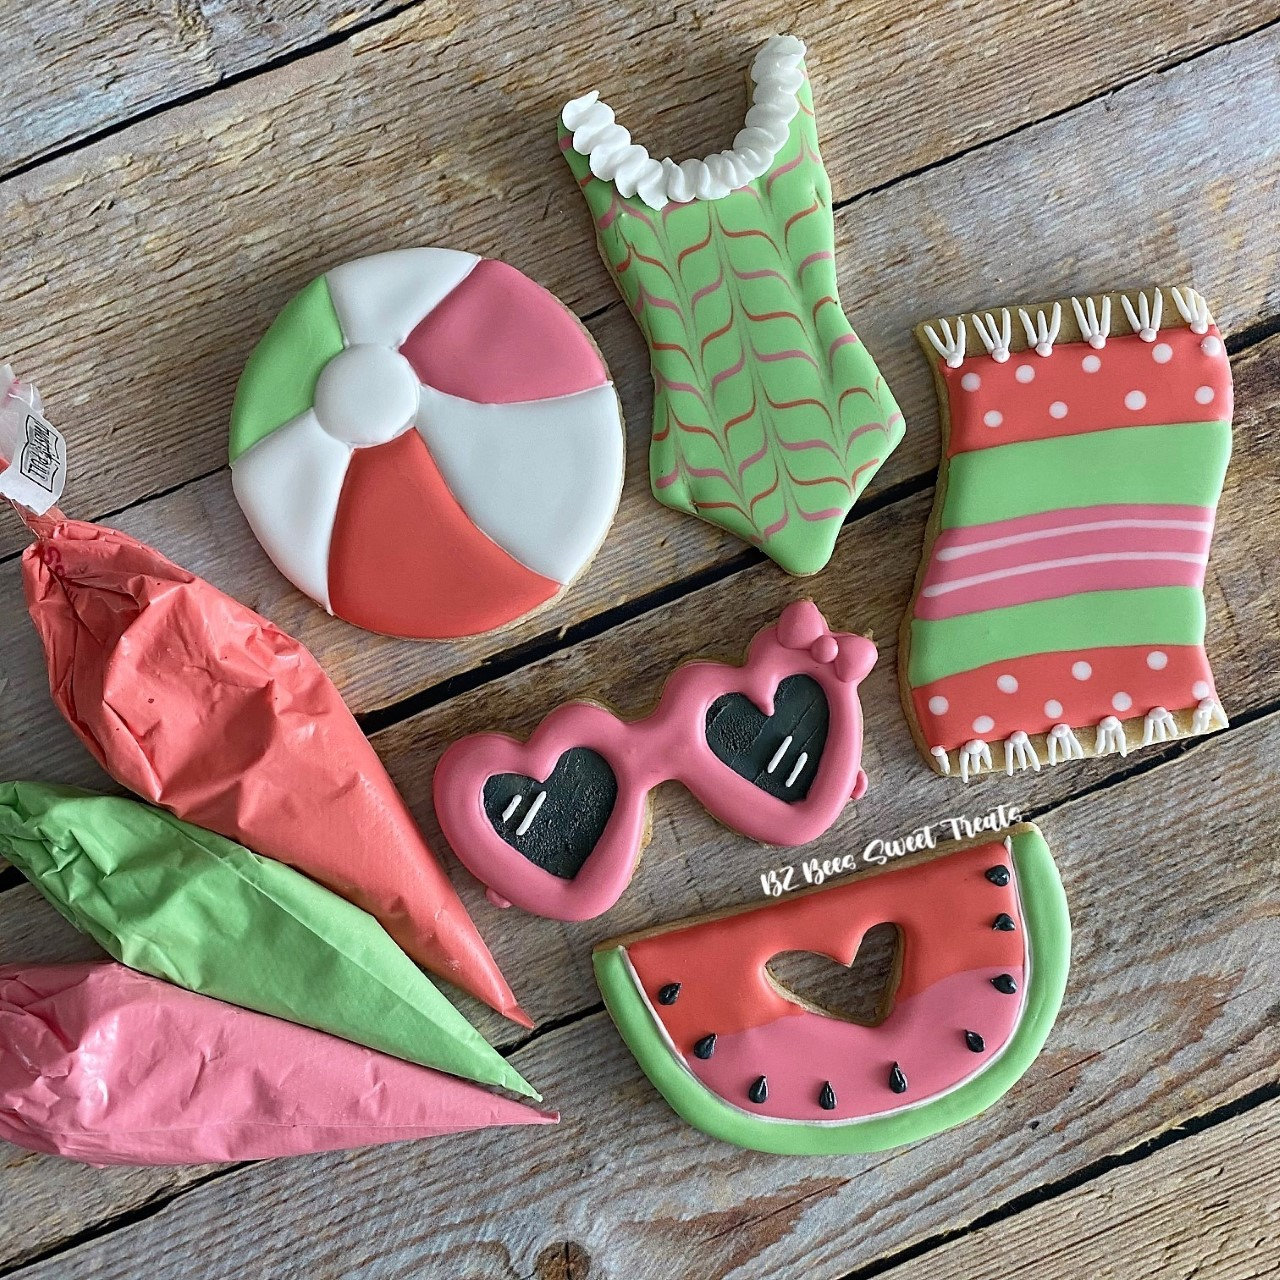 Cookie Decorating Class 07/31 @ 11am